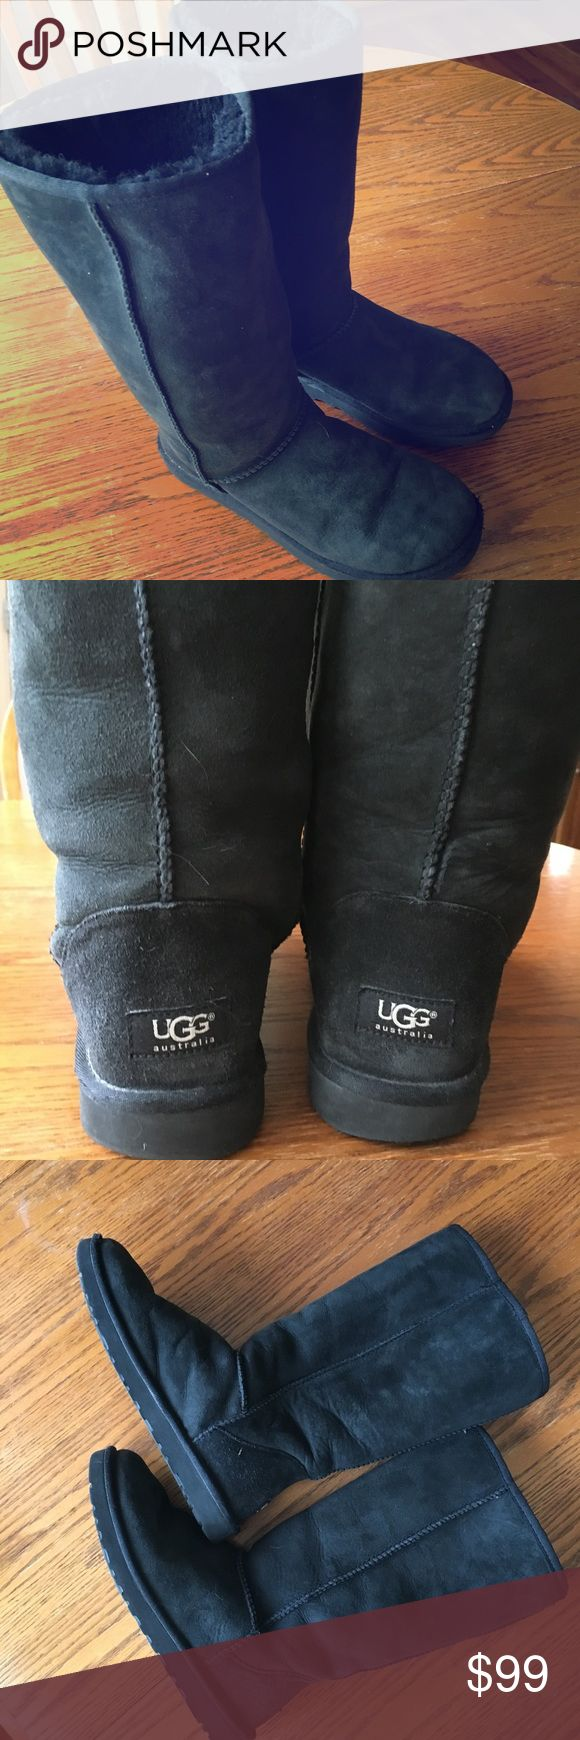 UGG Tall Black Suede Boots size 8. UGG Tall Black Suede Boots in very good condition.  size 8.  Authentic purchased at Nordstrom UGG Shoes